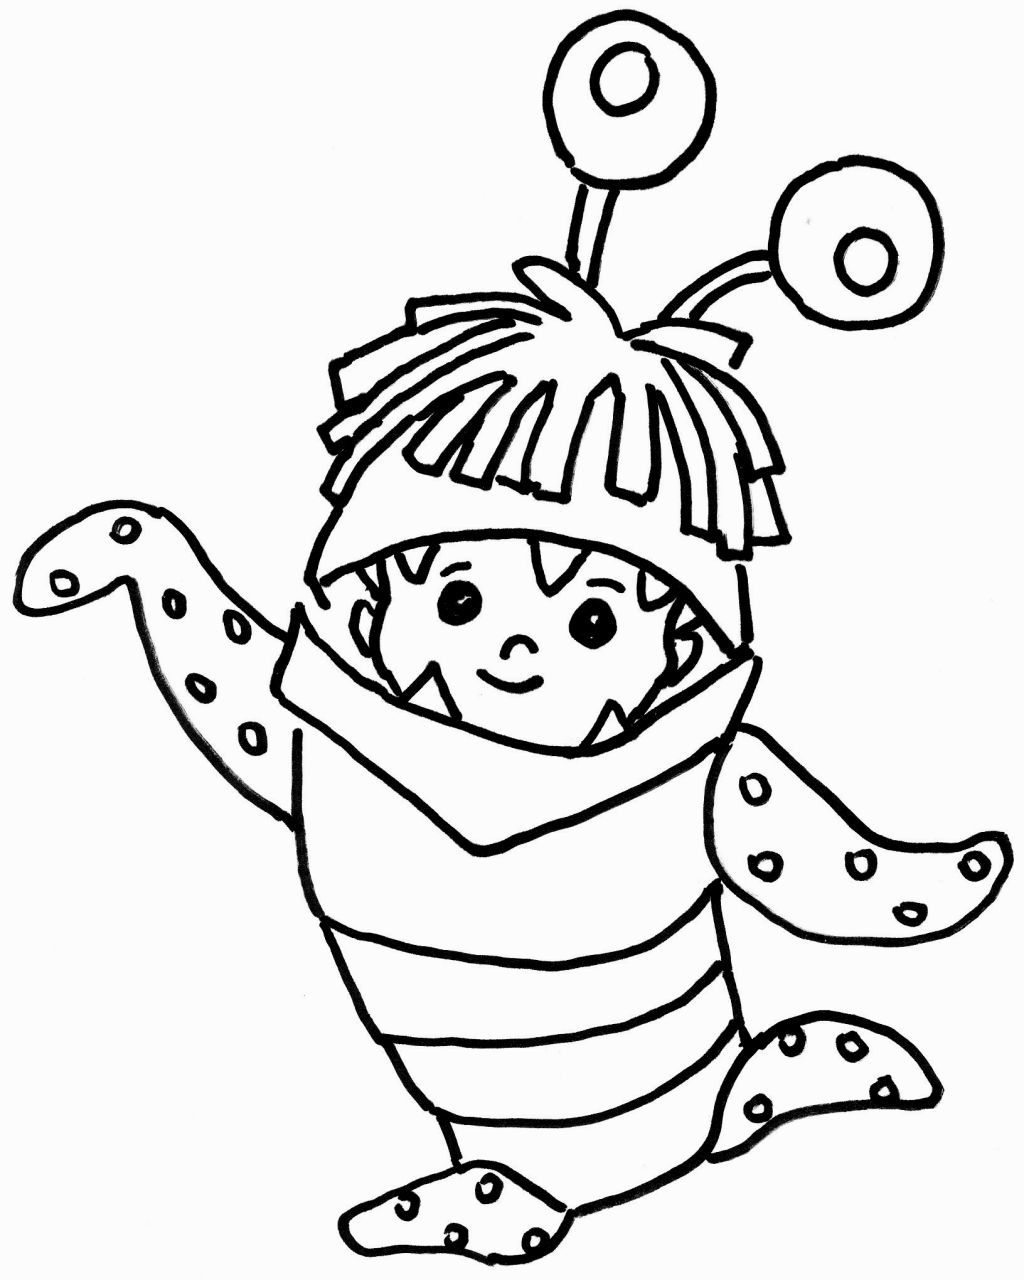 Monsters Inc Coloring Page  Monsters inc coloring pages, Monster